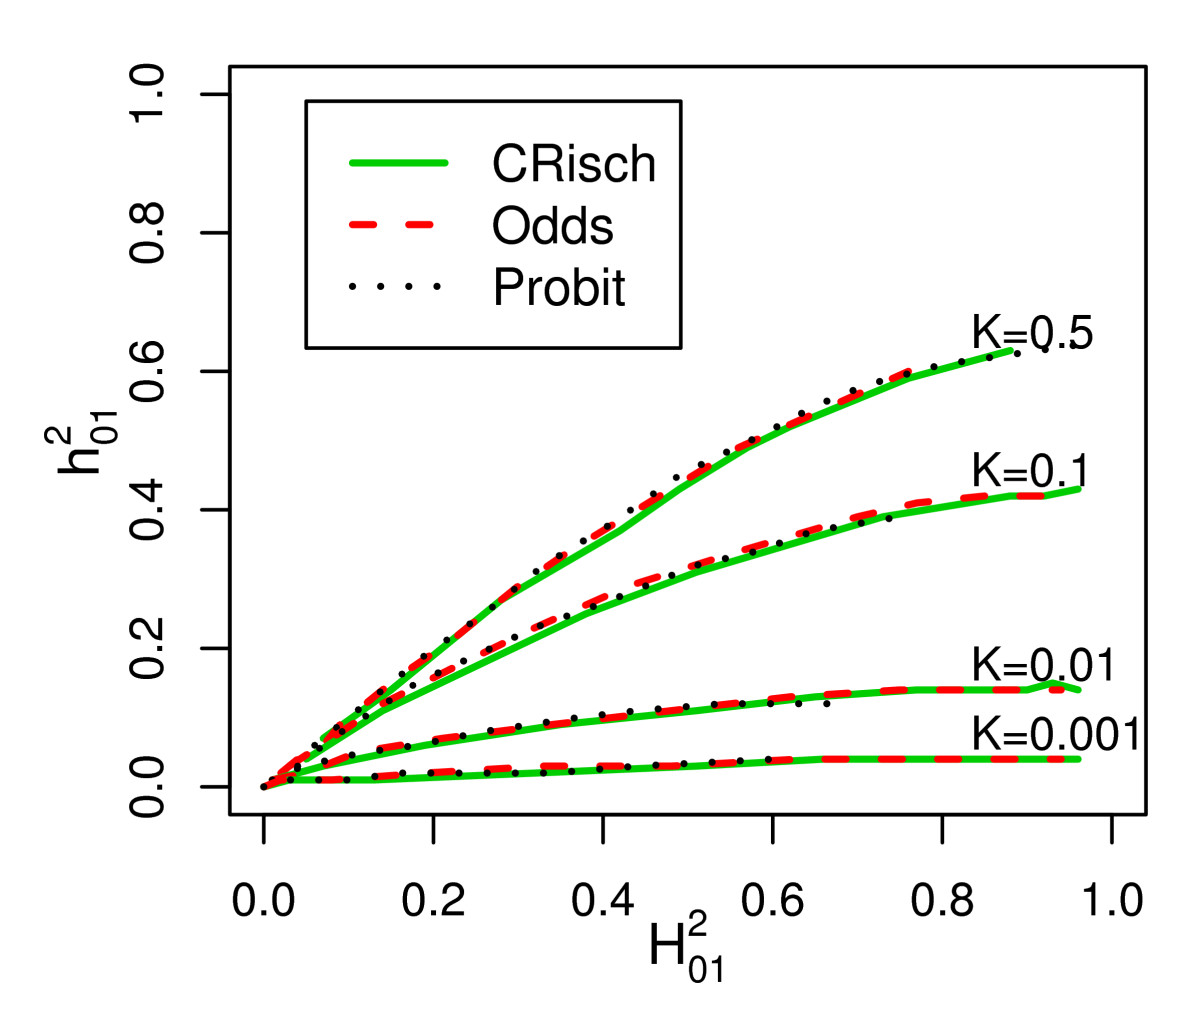 http://static-content.springer.com/image/art%3A10.1186%2Fgm131/MediaObjects/13073_2009_Article_131_Fig4_HTML.jpg